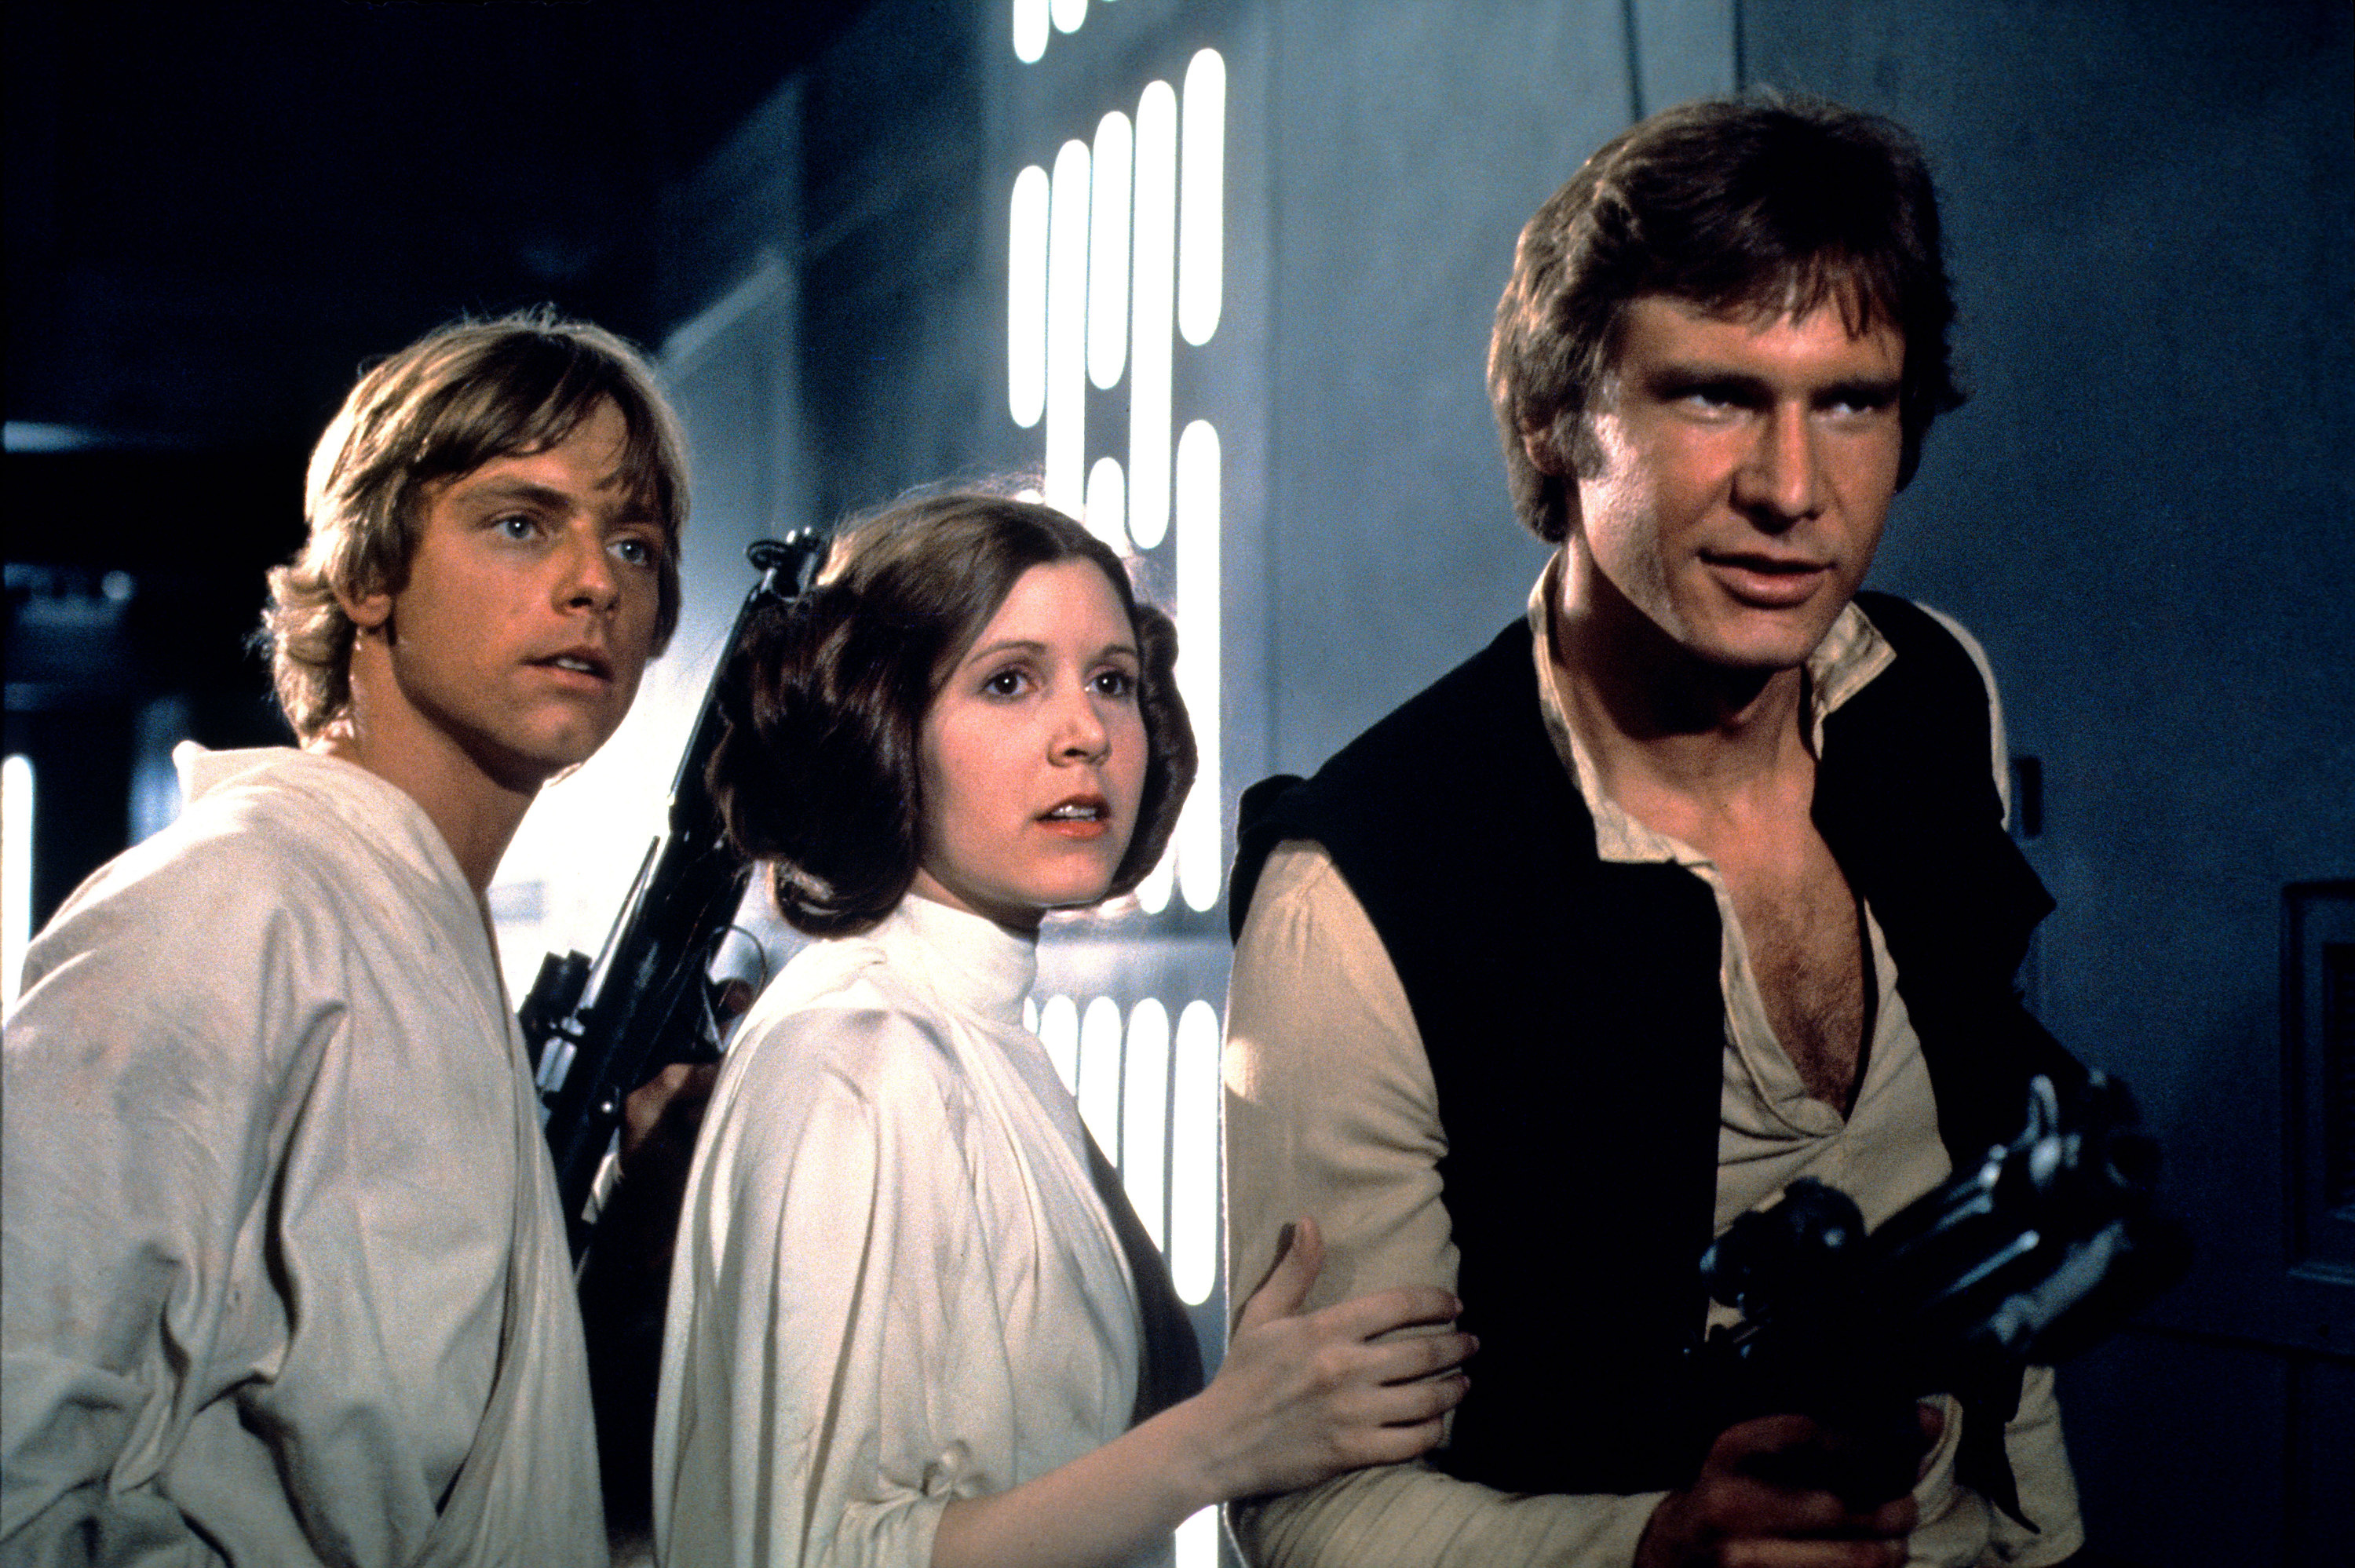 Leia stands between Han and Luke, who both hold blasters